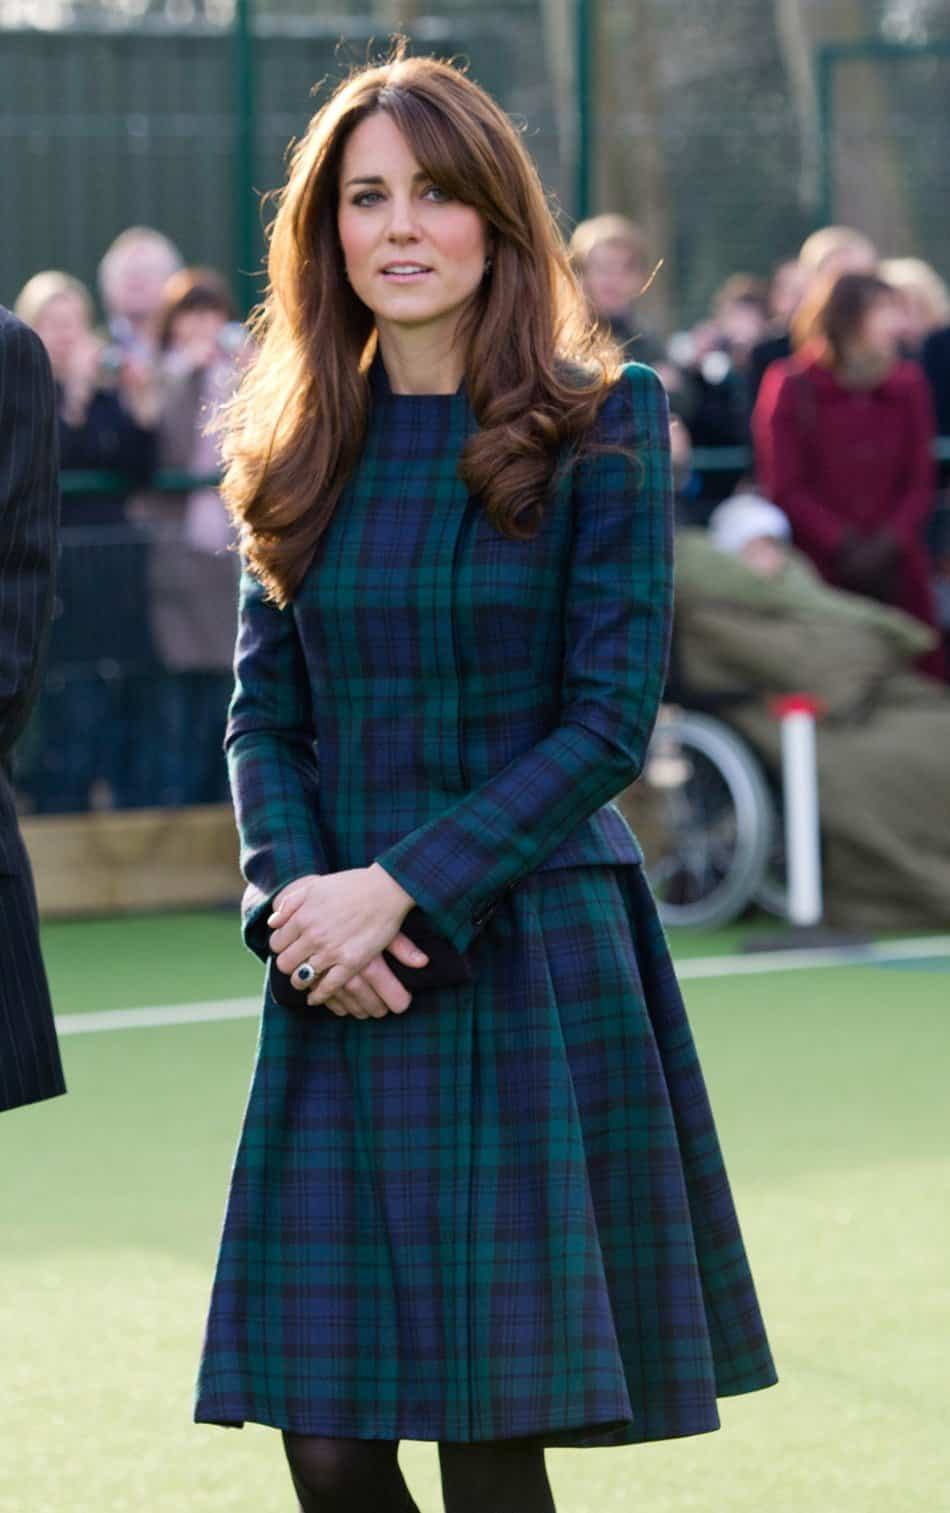 What Do You Think Of Kate Middleton 39 S Style Is She A Fashion Icon The Fashion Tag Blog